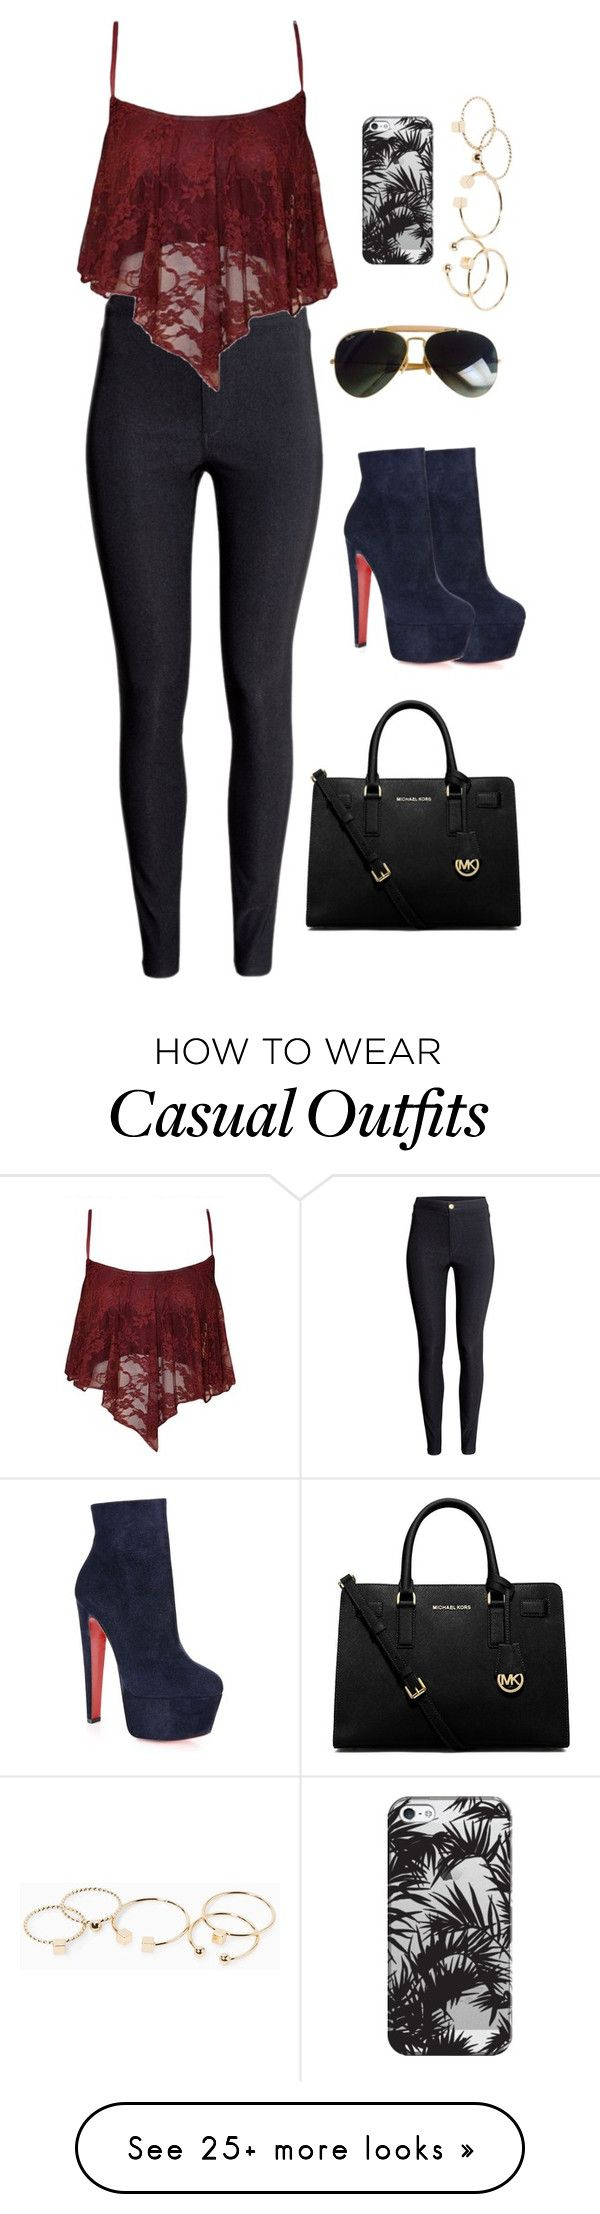 """""""Casual"""" by angelicana on Polyvore featuring Ray-Ban, MICHAEL Michael Kors, Casetify, MANGO, H&M and Christian Louboutin"""